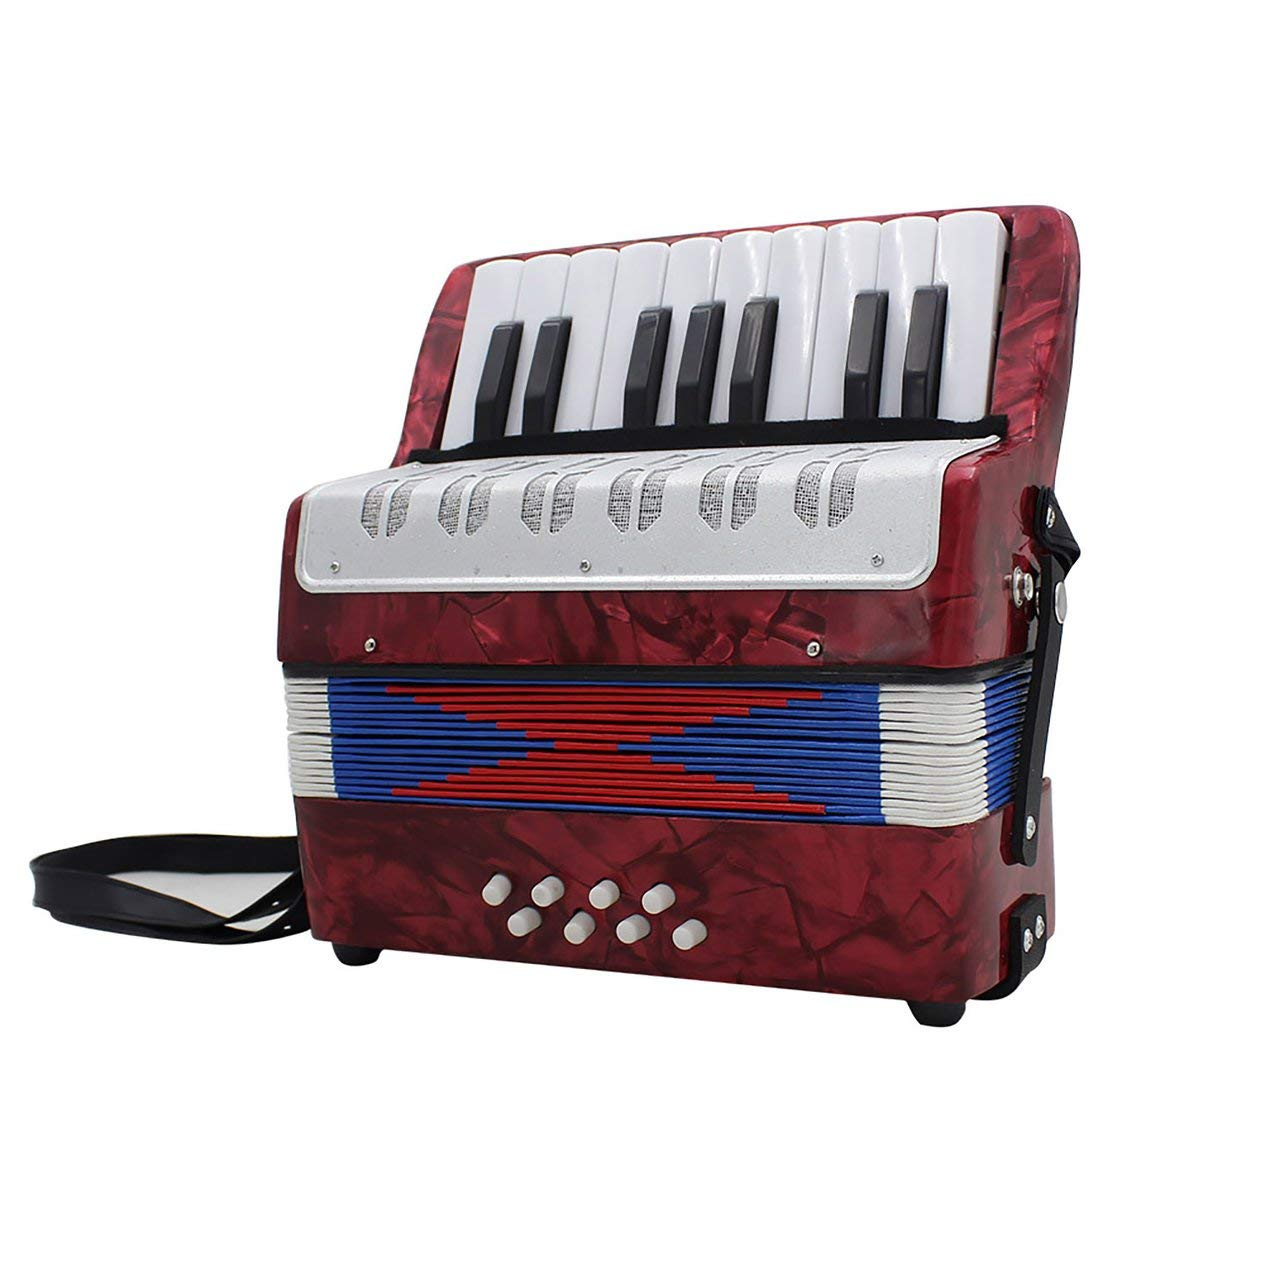 17-Key 8 Bass Accordion Musical Toy for Educational Musical Instrument Simulation Learning Concertina Rhythm by Fashinlook (Image #4)